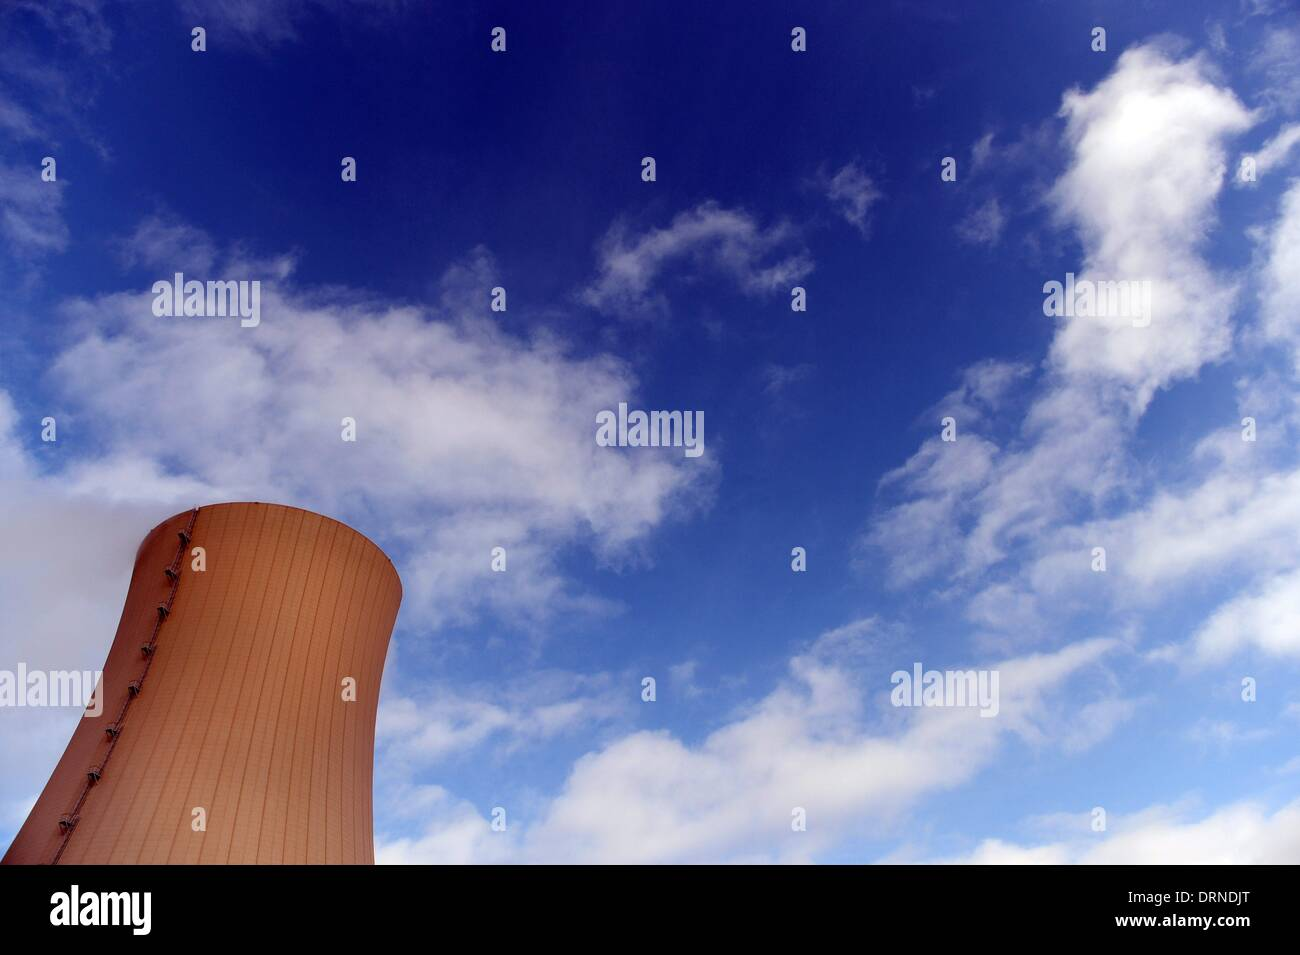 A cooling tower of the nuclear power plant Grohnde in Germany, 28. January 2014. Photo: Frank May - Stock Image